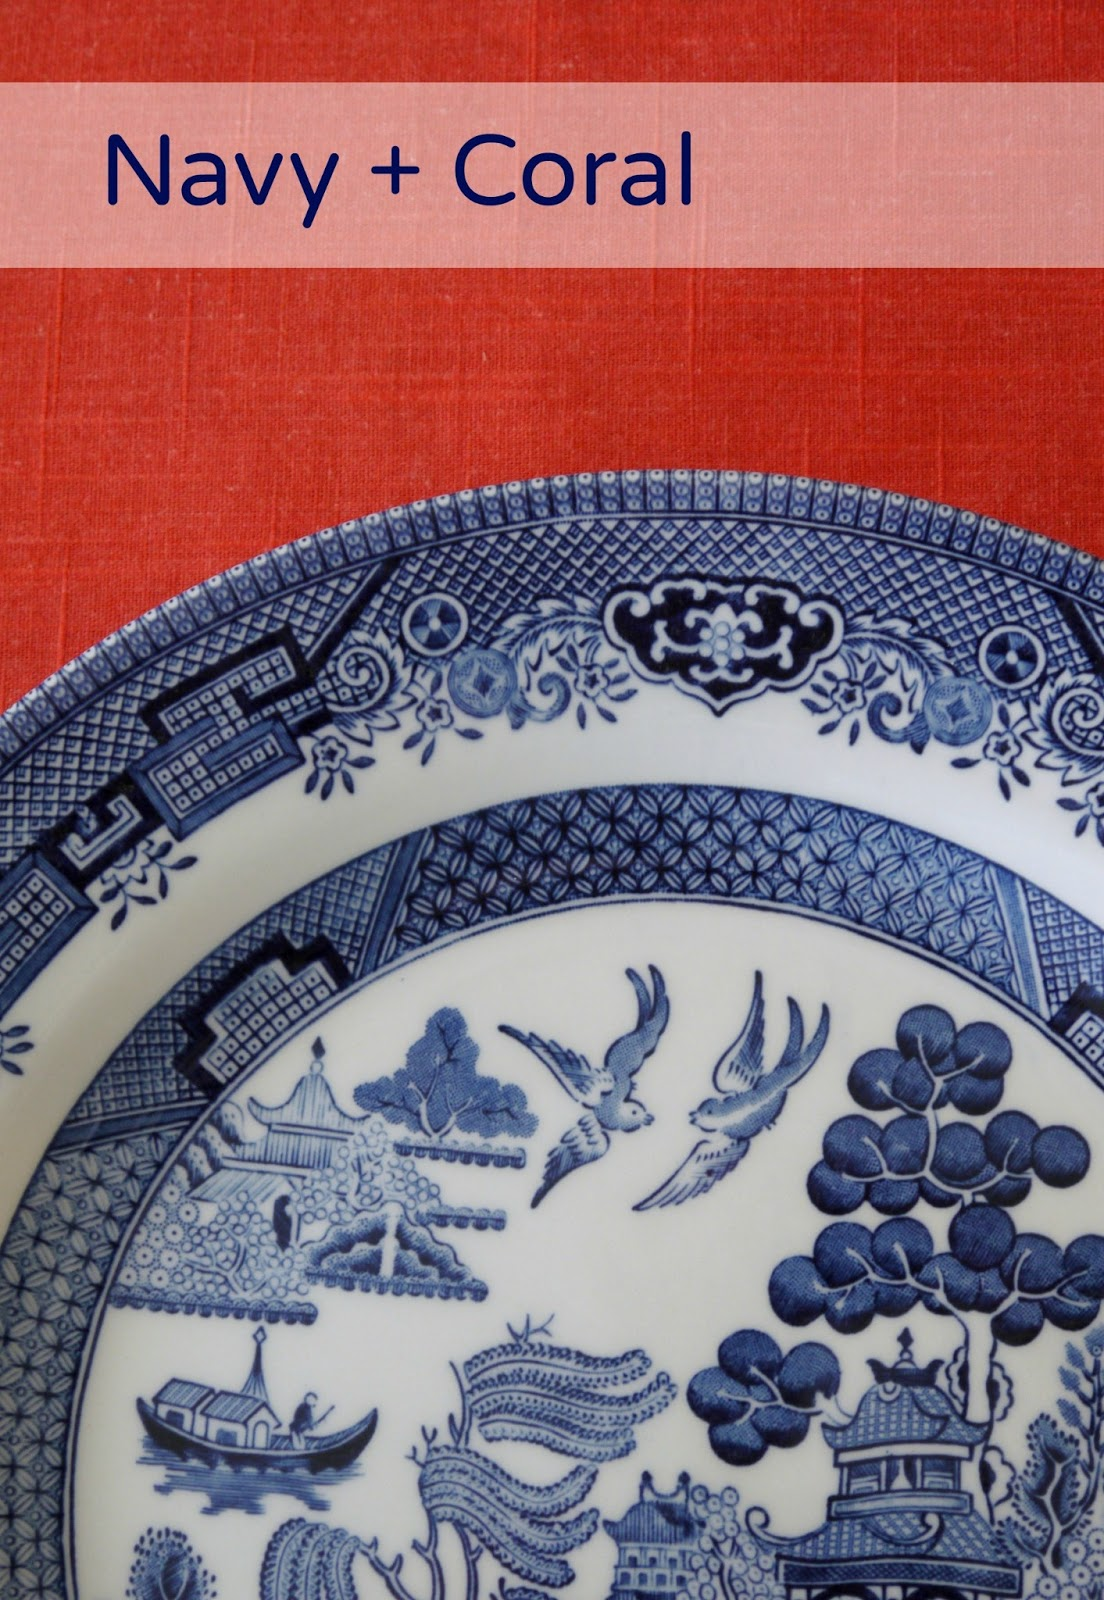 Sense And Simplicity: Coral And Navy Tablesetting